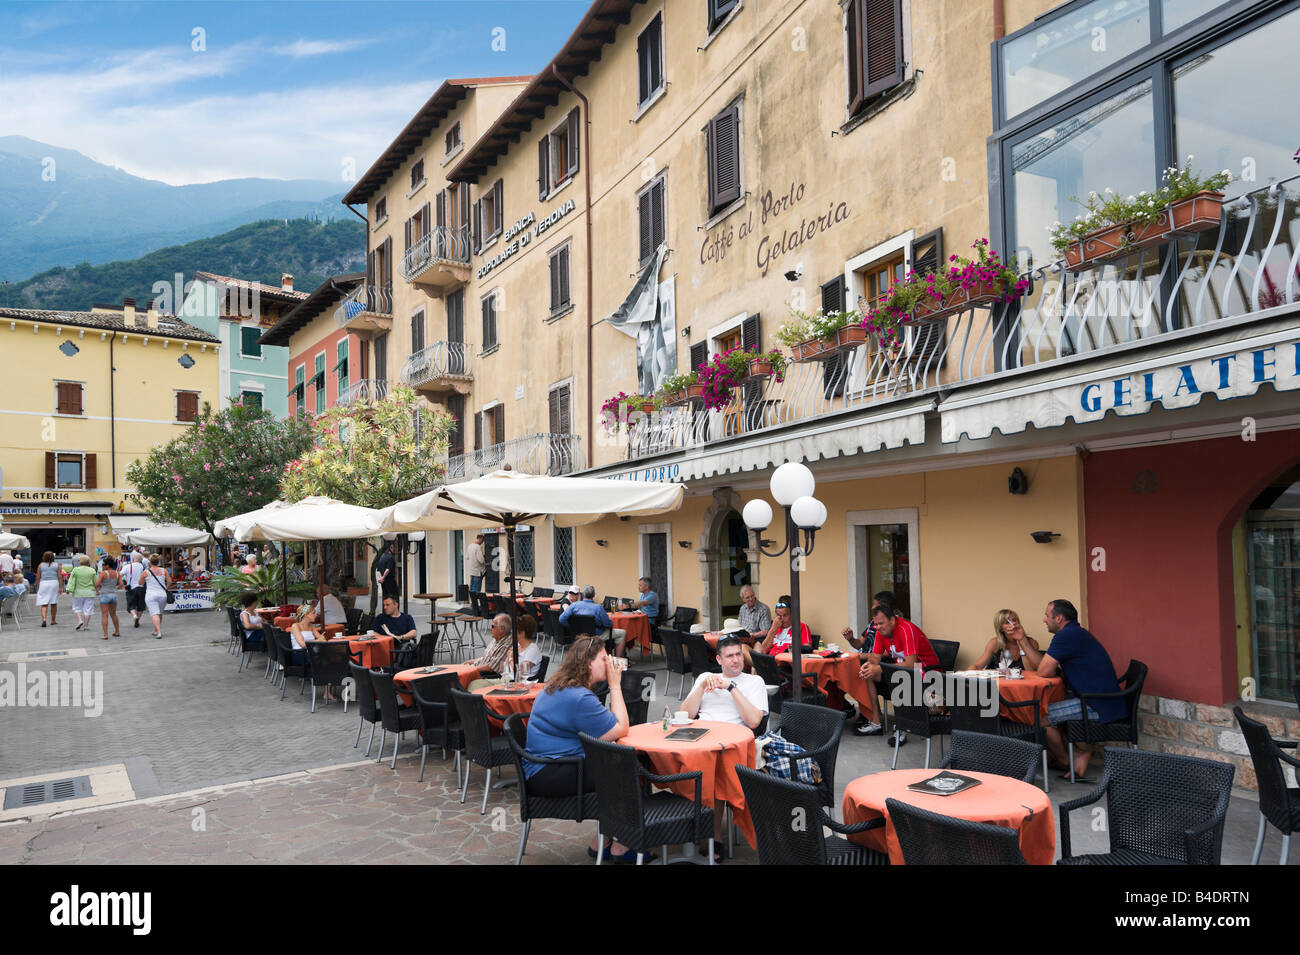 Cafe on the harbourfront in the old town, Malcesine, Lake Garda, Italy Stock Photo